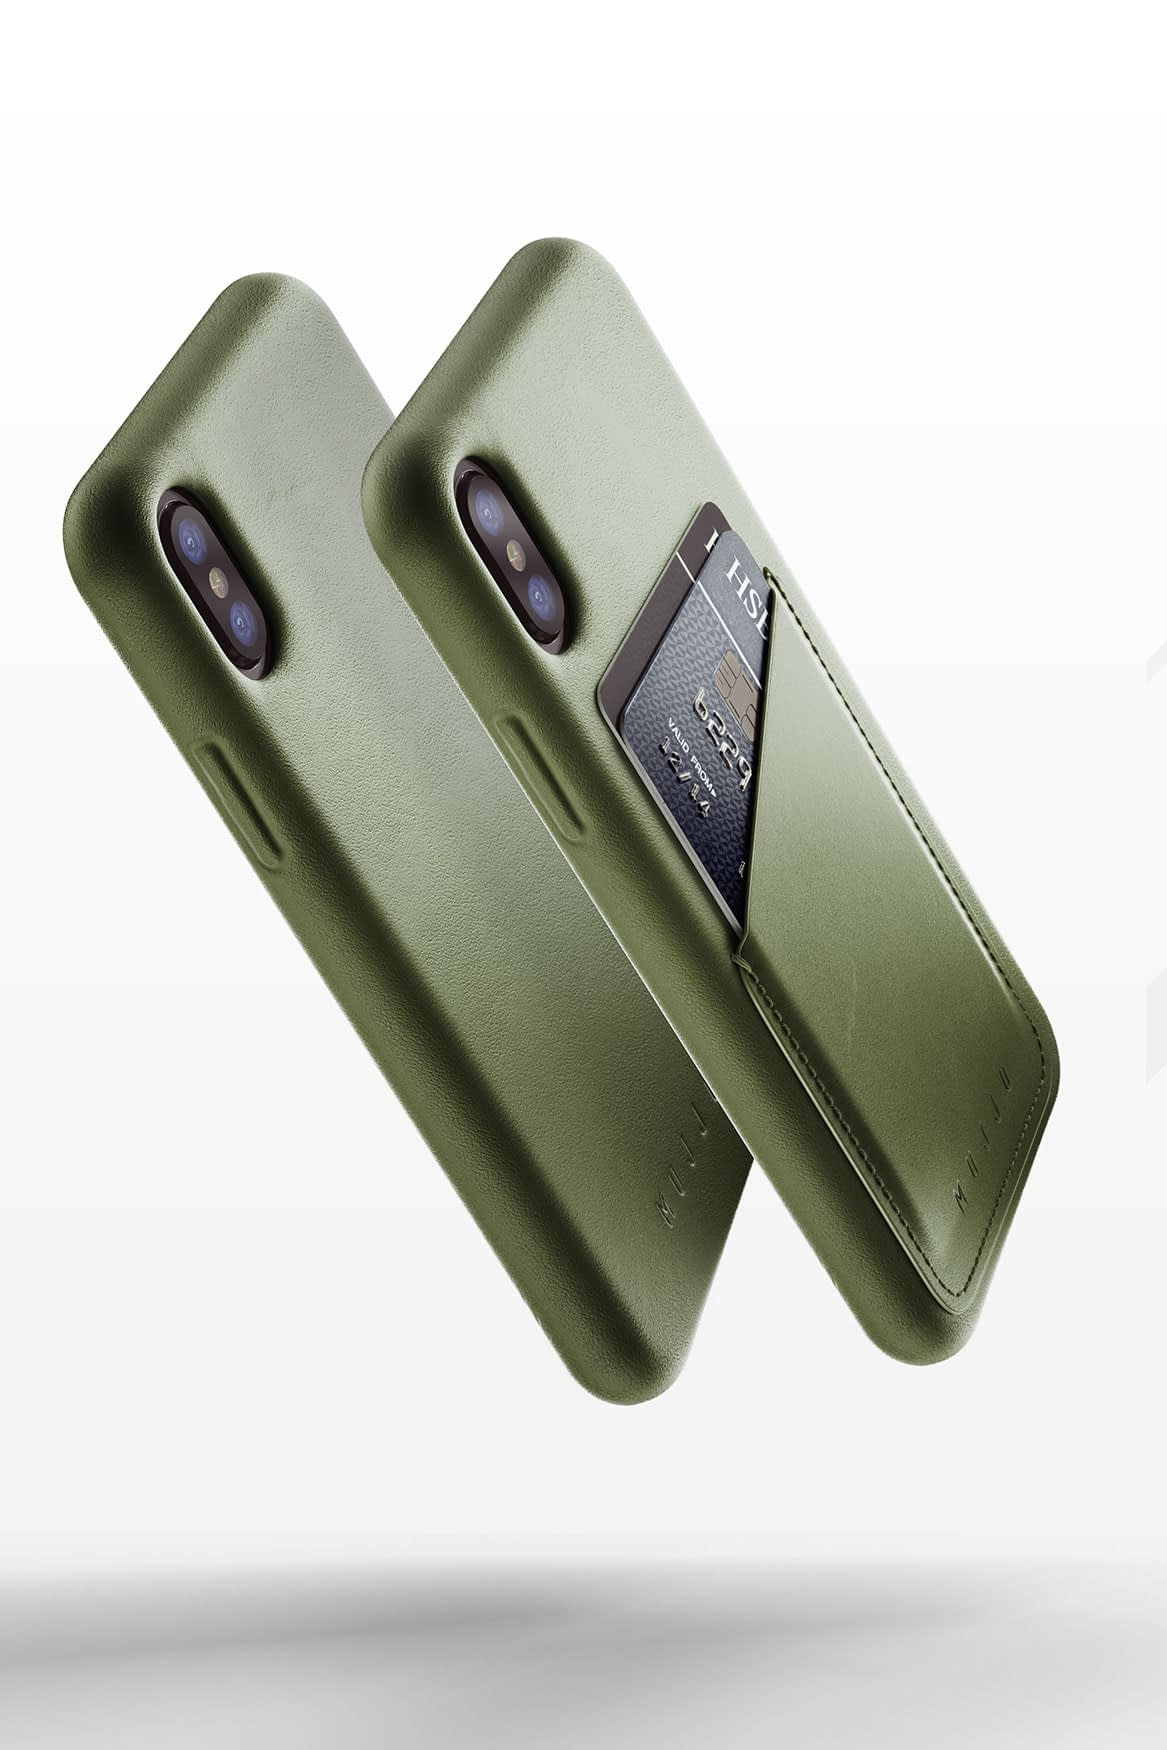 Full leather wallet case for iPhone X Line up 03